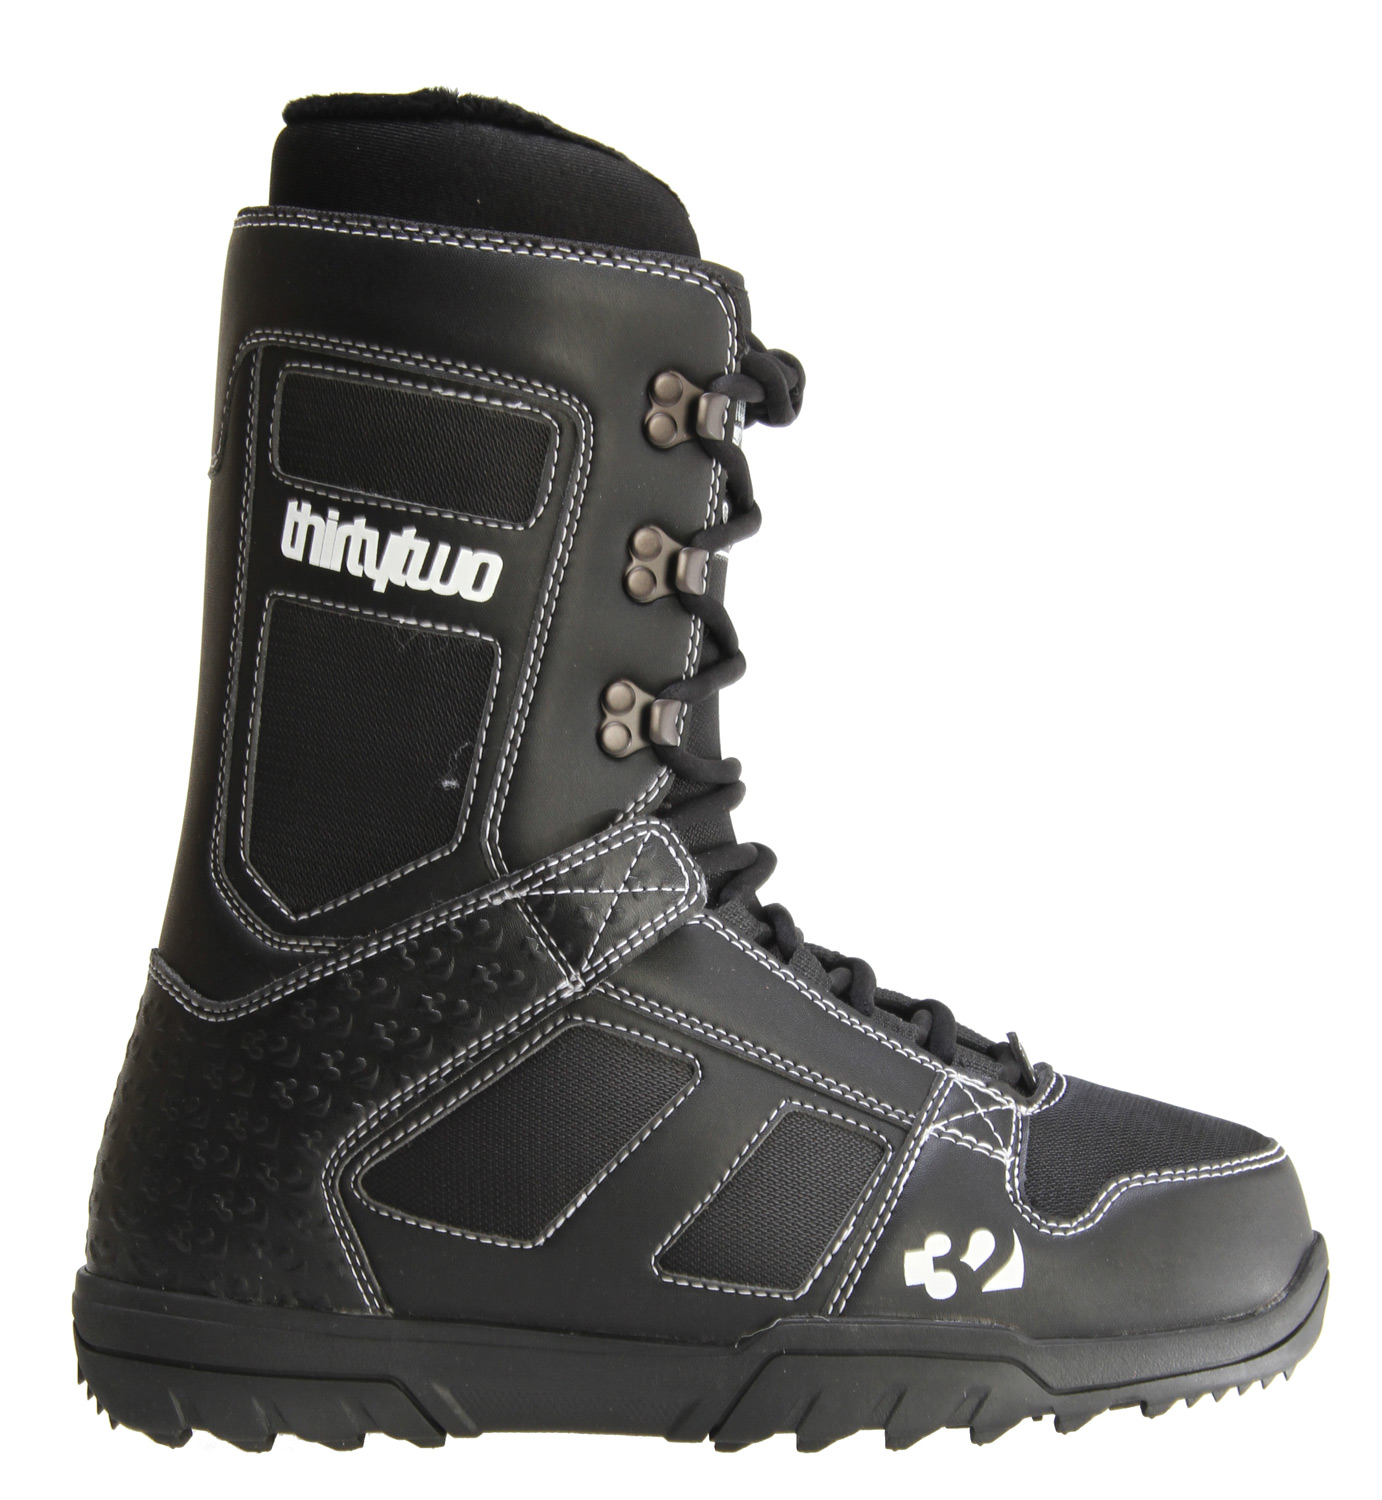 Snowboard Stand out from the weekend warrior pack.Key Features of the 32 - Thirty Two Exus Snowboard Boots: Comfort Fit Level 1 Liner Level 1 Ortholite Footbed 4/10 Flex Rating Rubber Outsole With EVA Cushioning 3D Molded Tongue Internal Lacing System - $83.95